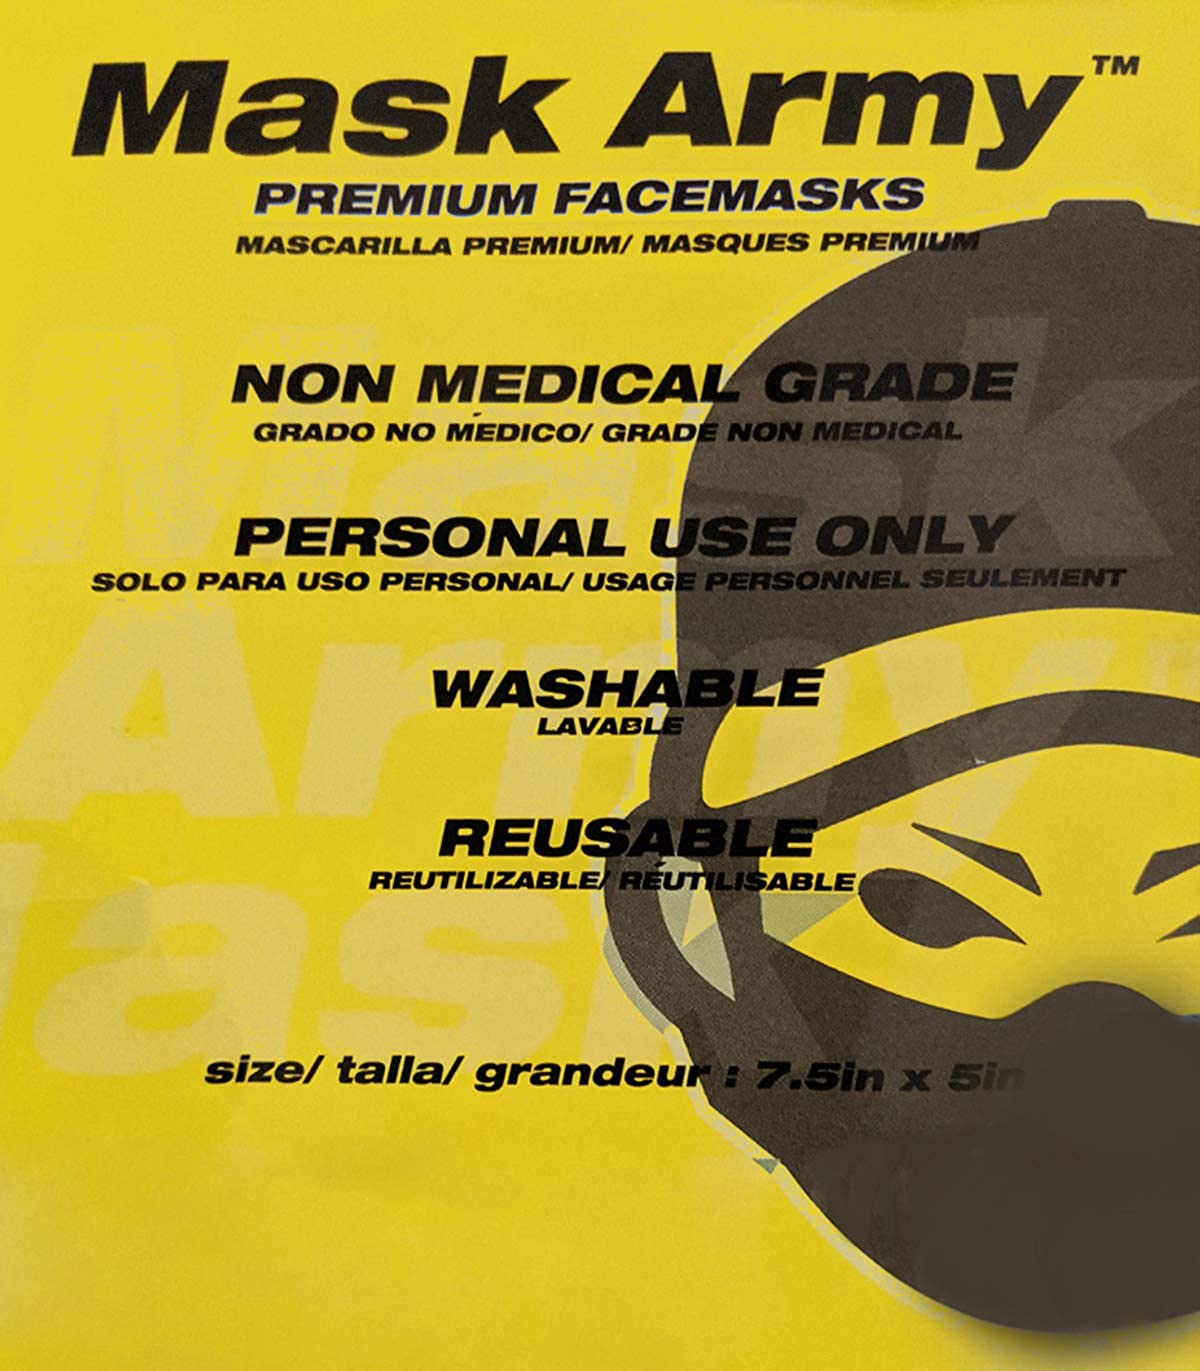 M4SK ARMY 3-Ply Mask for Kids with Nose Clip